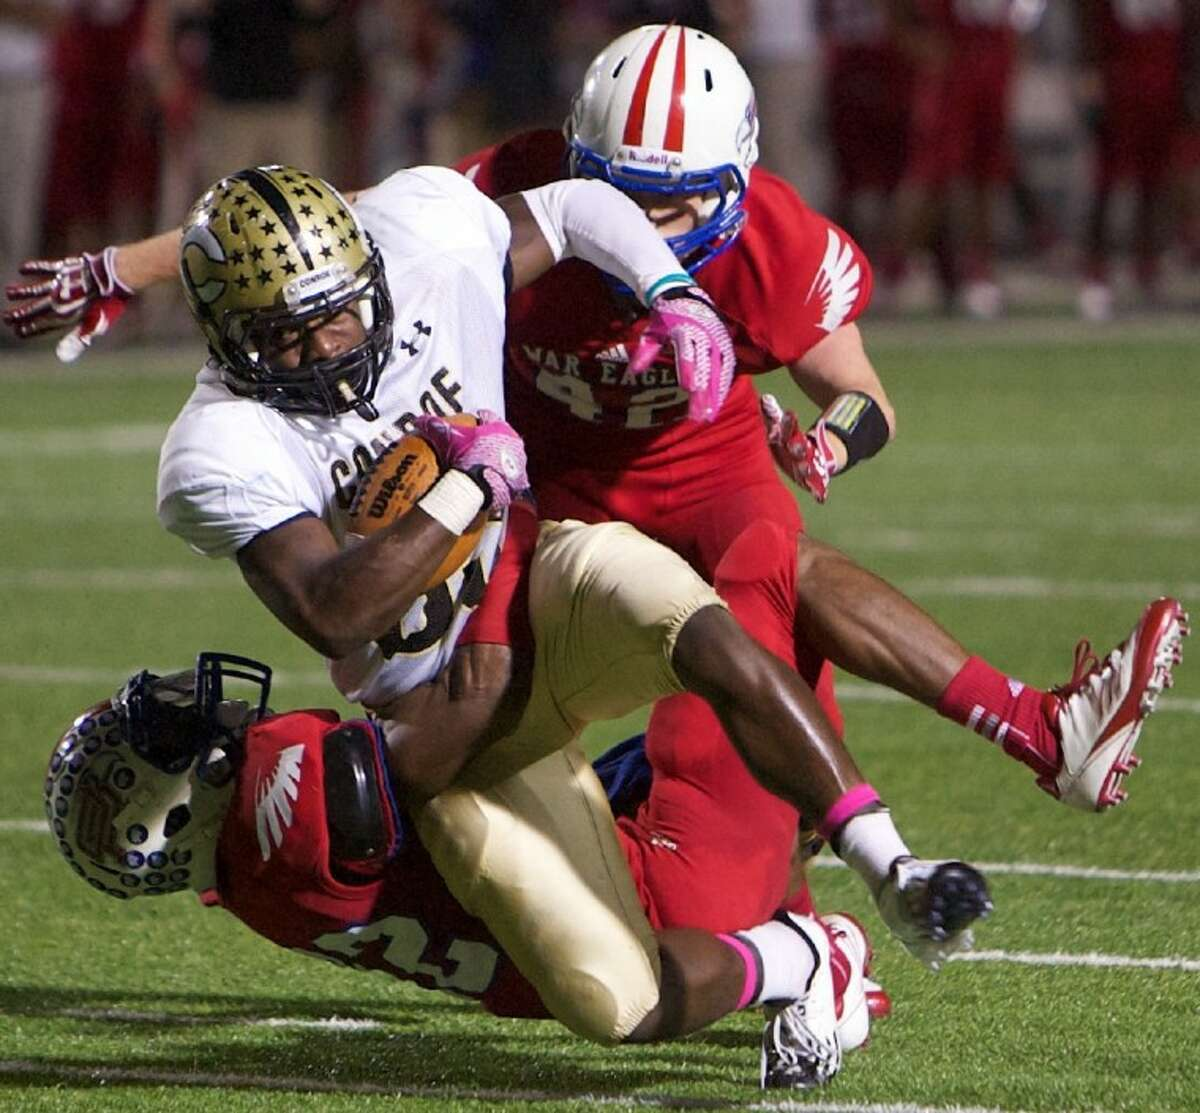 Conroe's Larry Day battles against a pair of Oak Ridge defenders during Friday night's district game at Woodforest Bank Stadium in Shenandoah. To view or purchase this photo and others like it visit: www.yourconroenews.com/photos